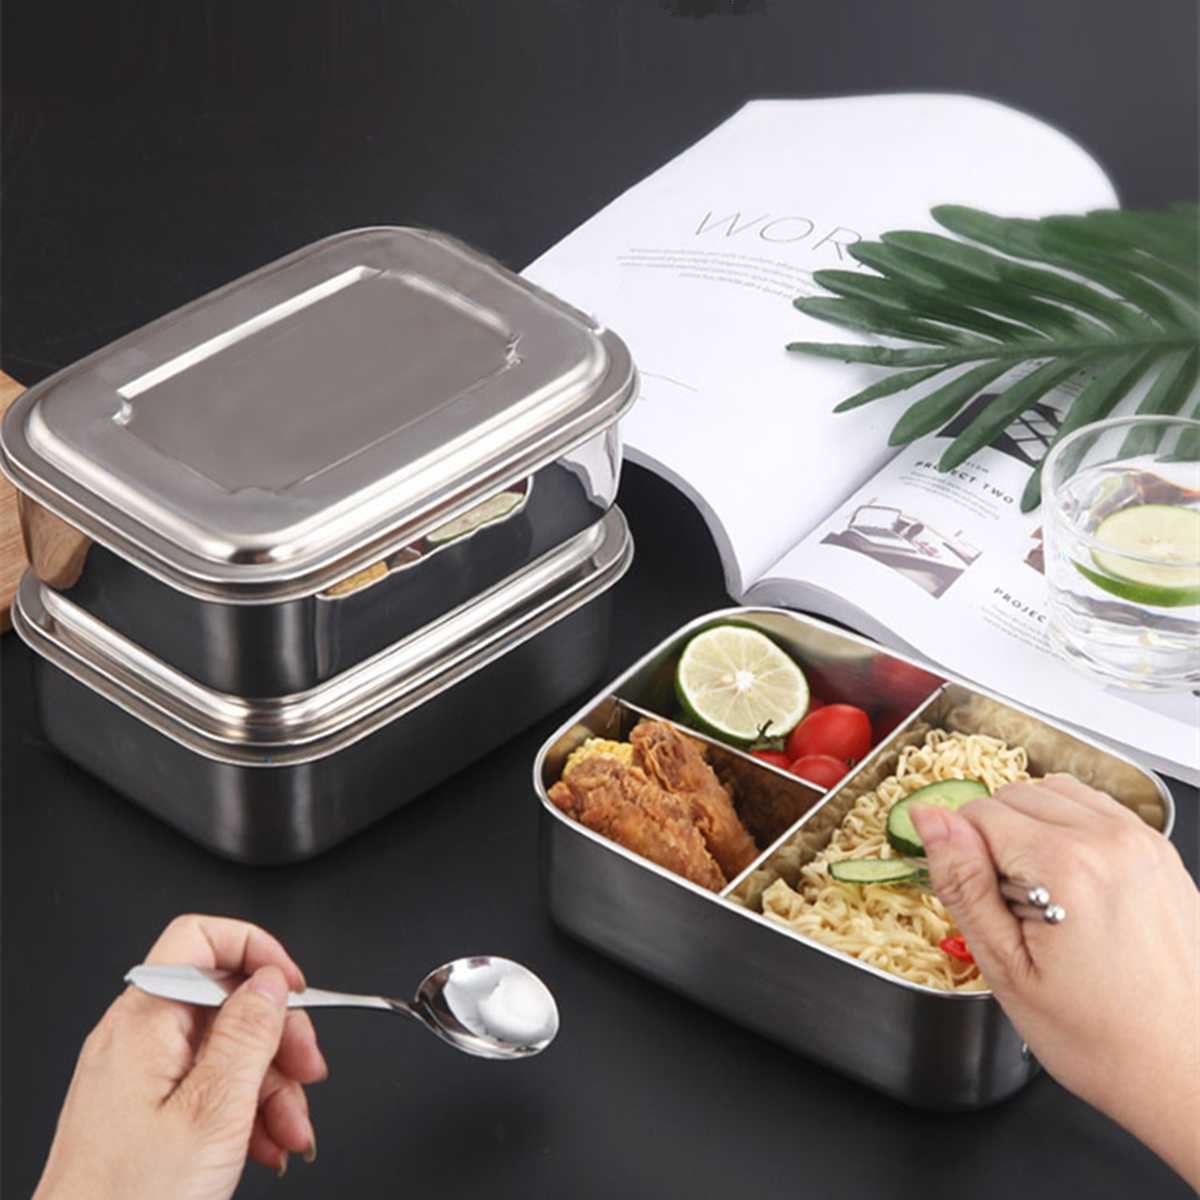 Bento Box Stainless Steel Lunch Container Three Section Design